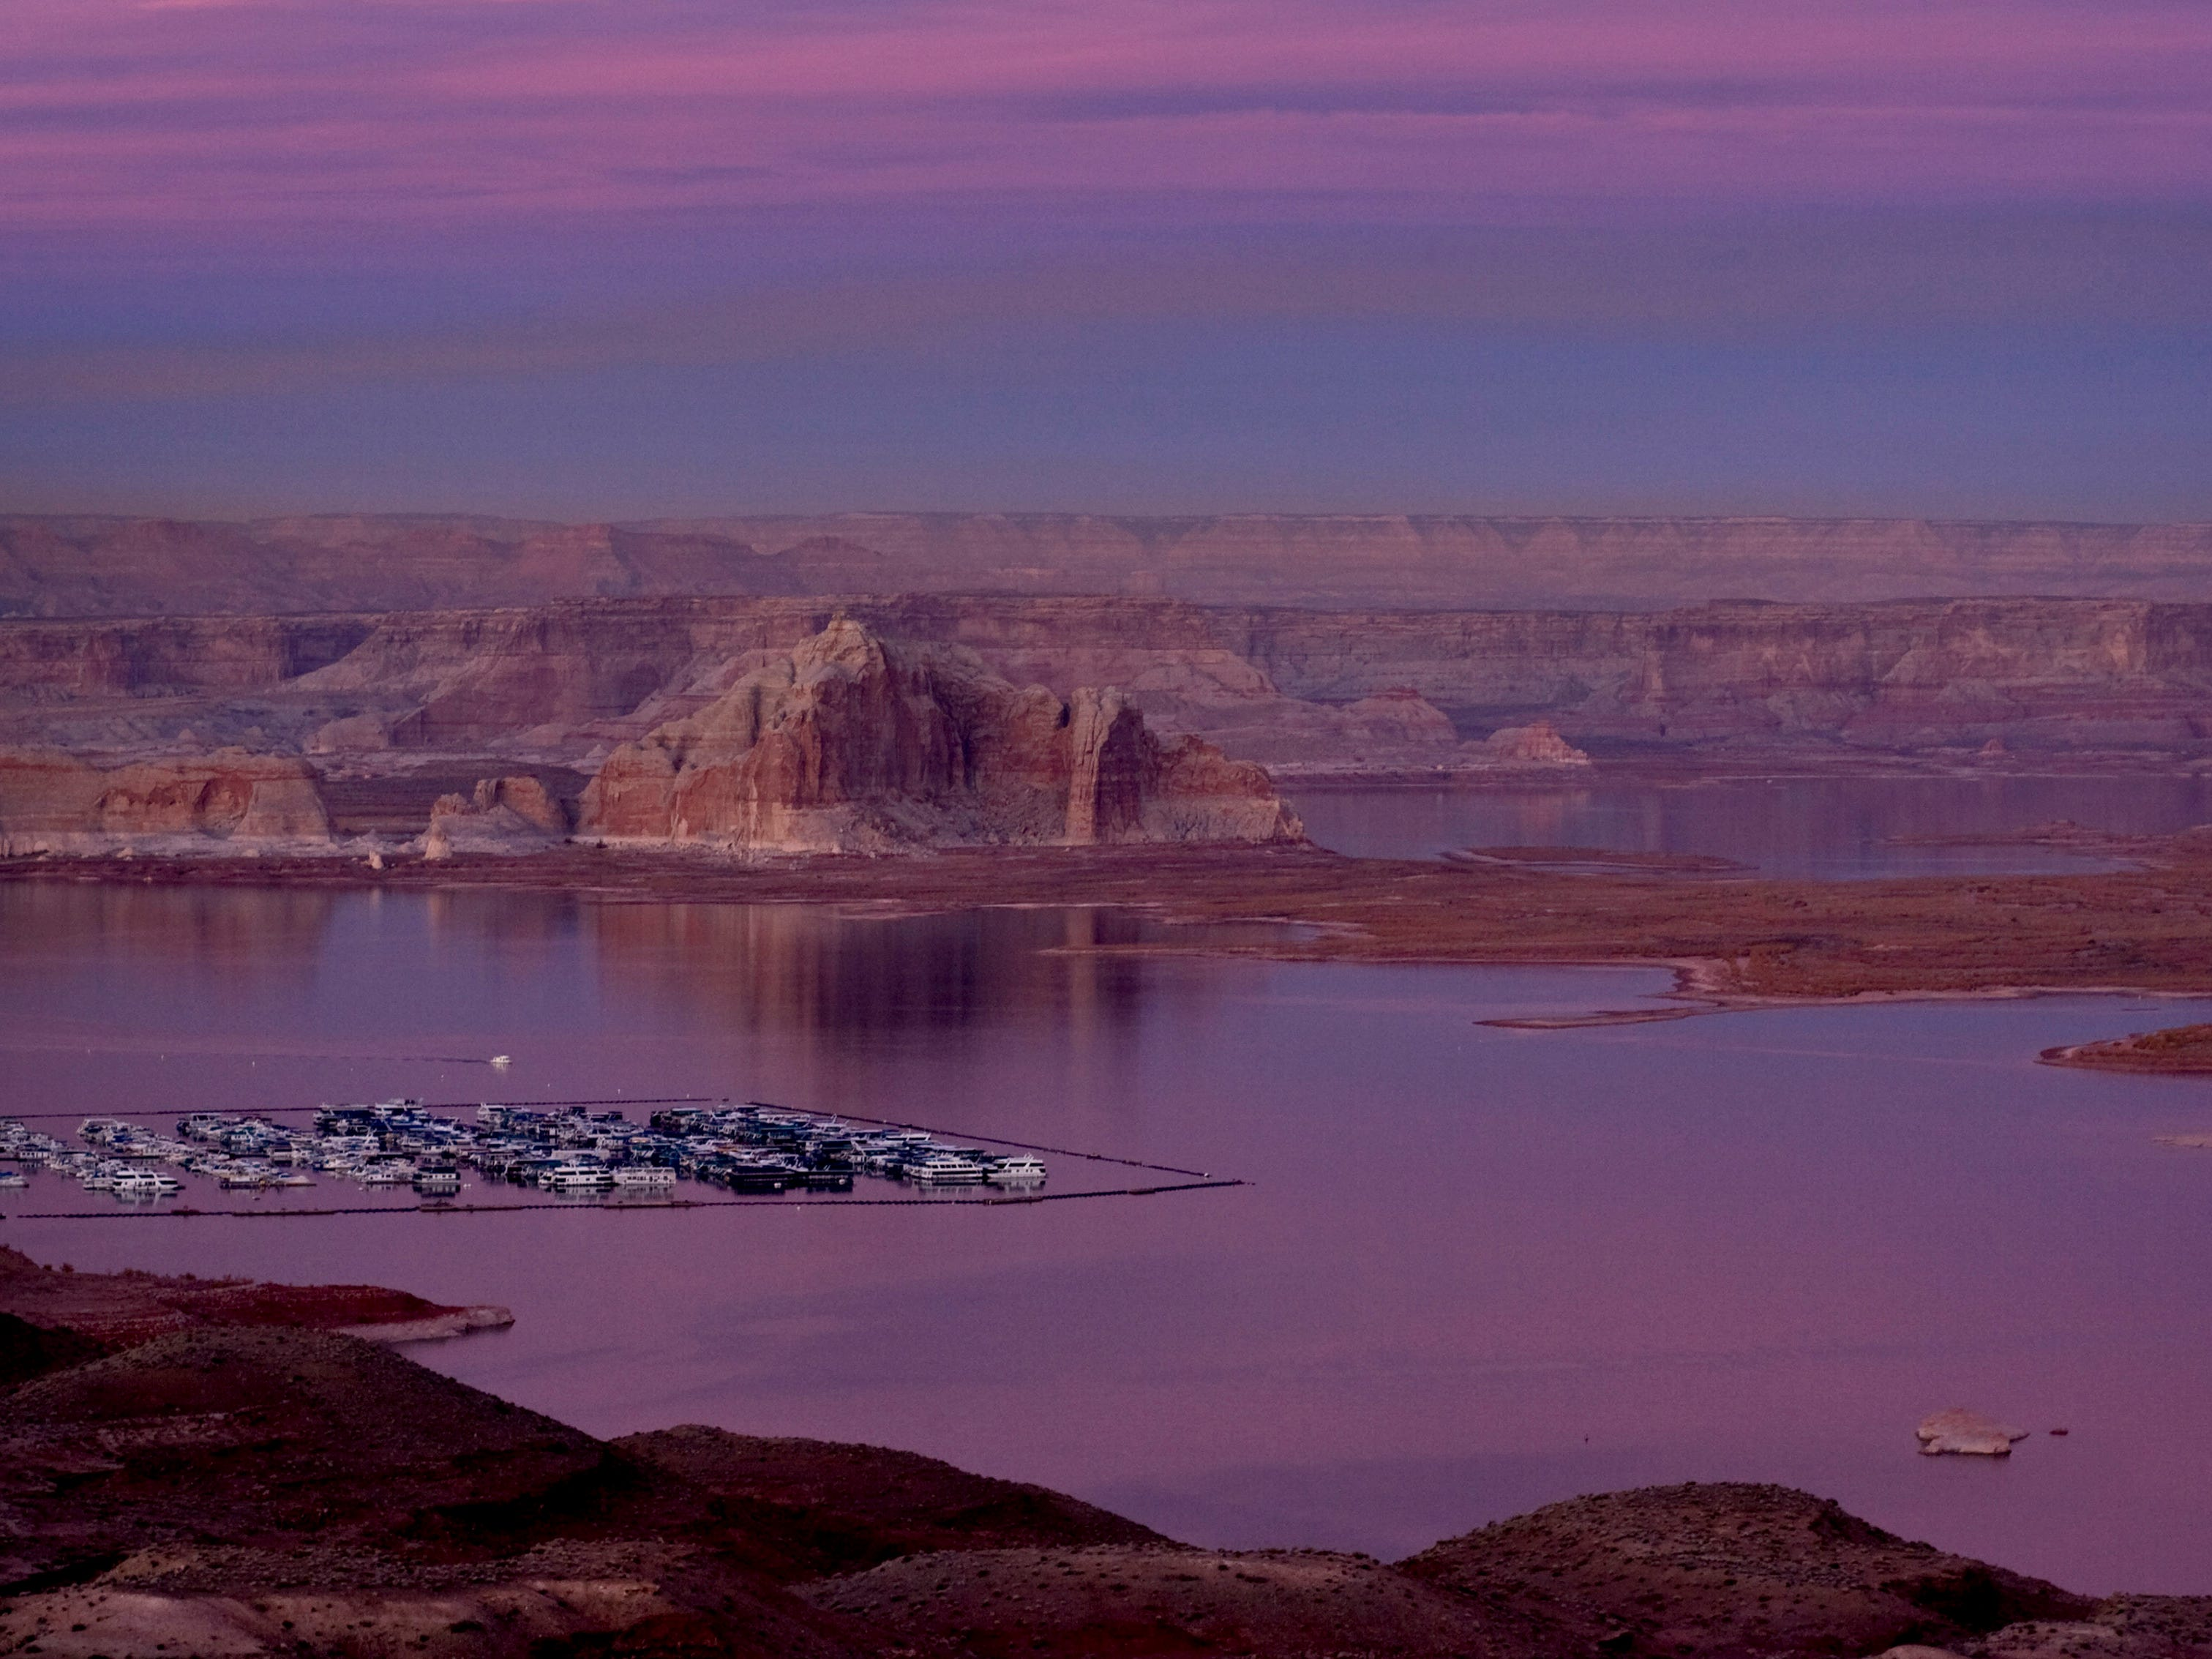 All seems still as the sun sets on Lake Powell's Wahweap Marina. Lake Powell sits at 48 percent of capacity, 101 feet below its full elevation of 3,700 feet above sea level.